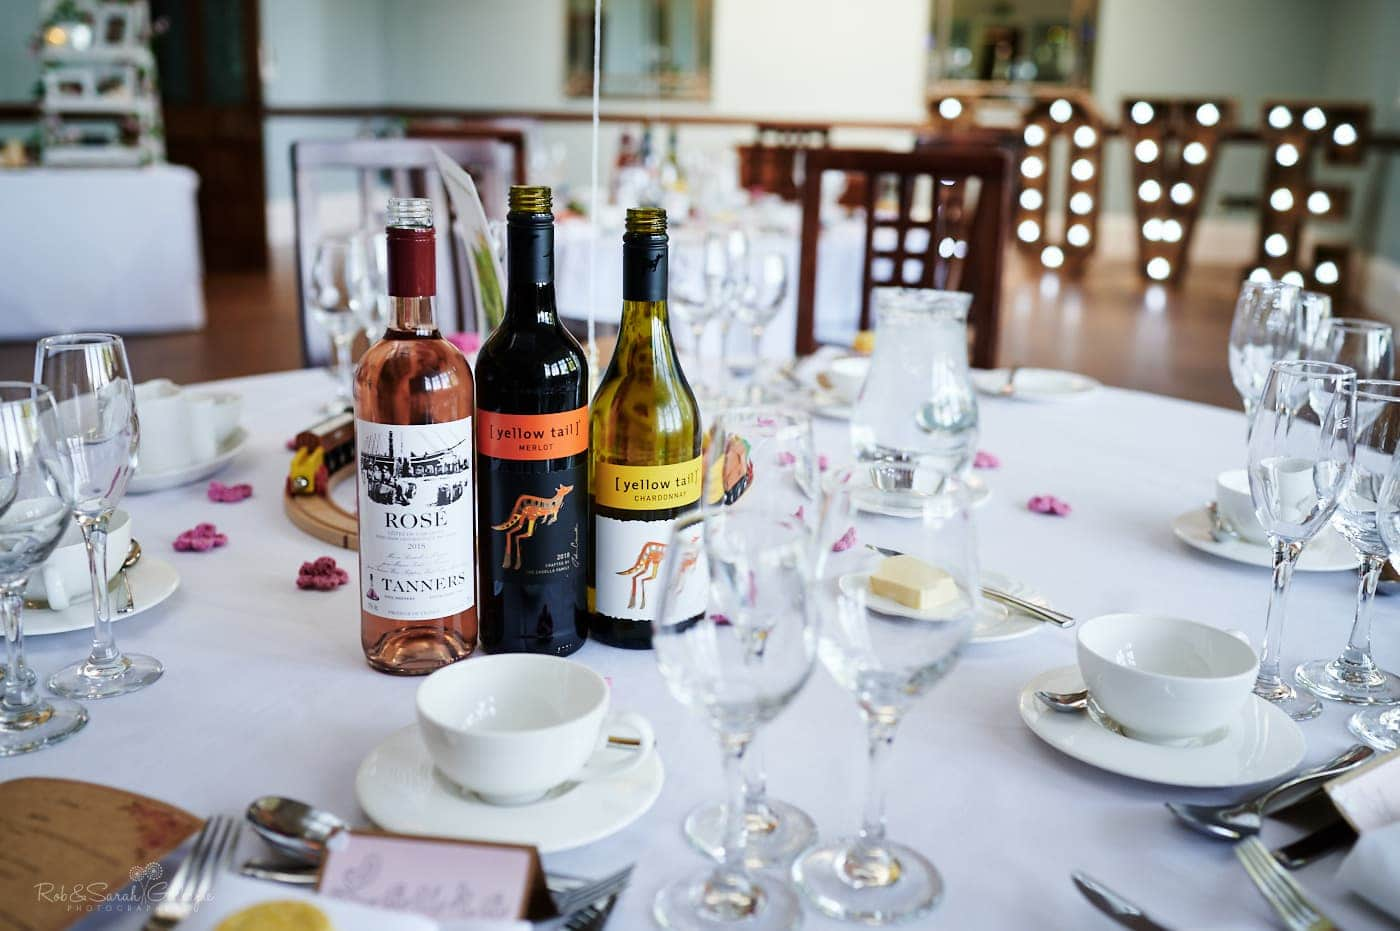 Wine bottles and table places for wedding meal at Pendrell Hall